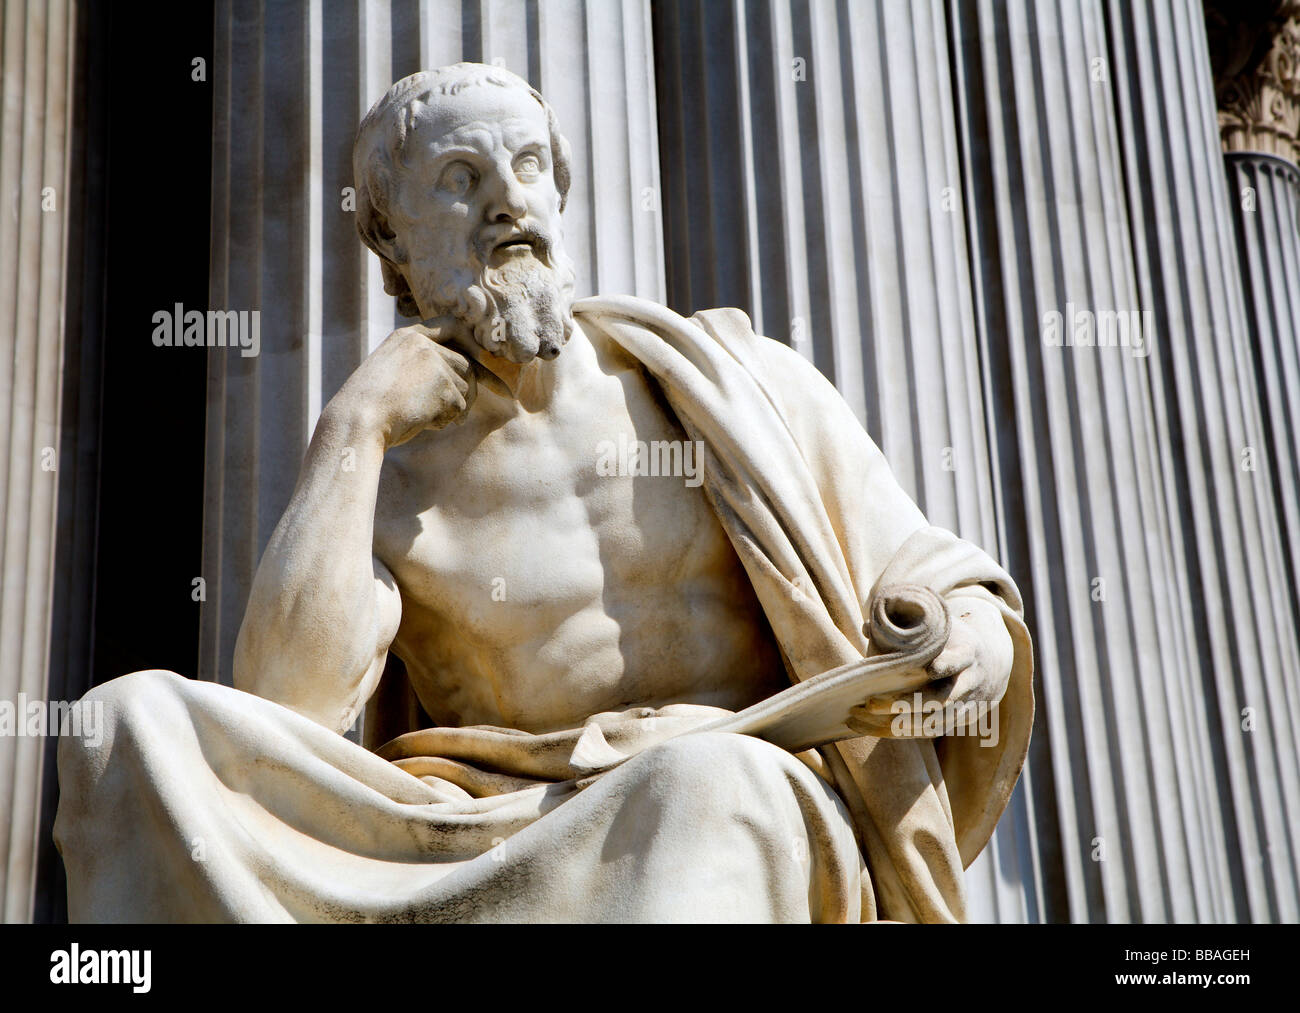 Vienna - Herodot philosopher statue for the parliament - Stock Image